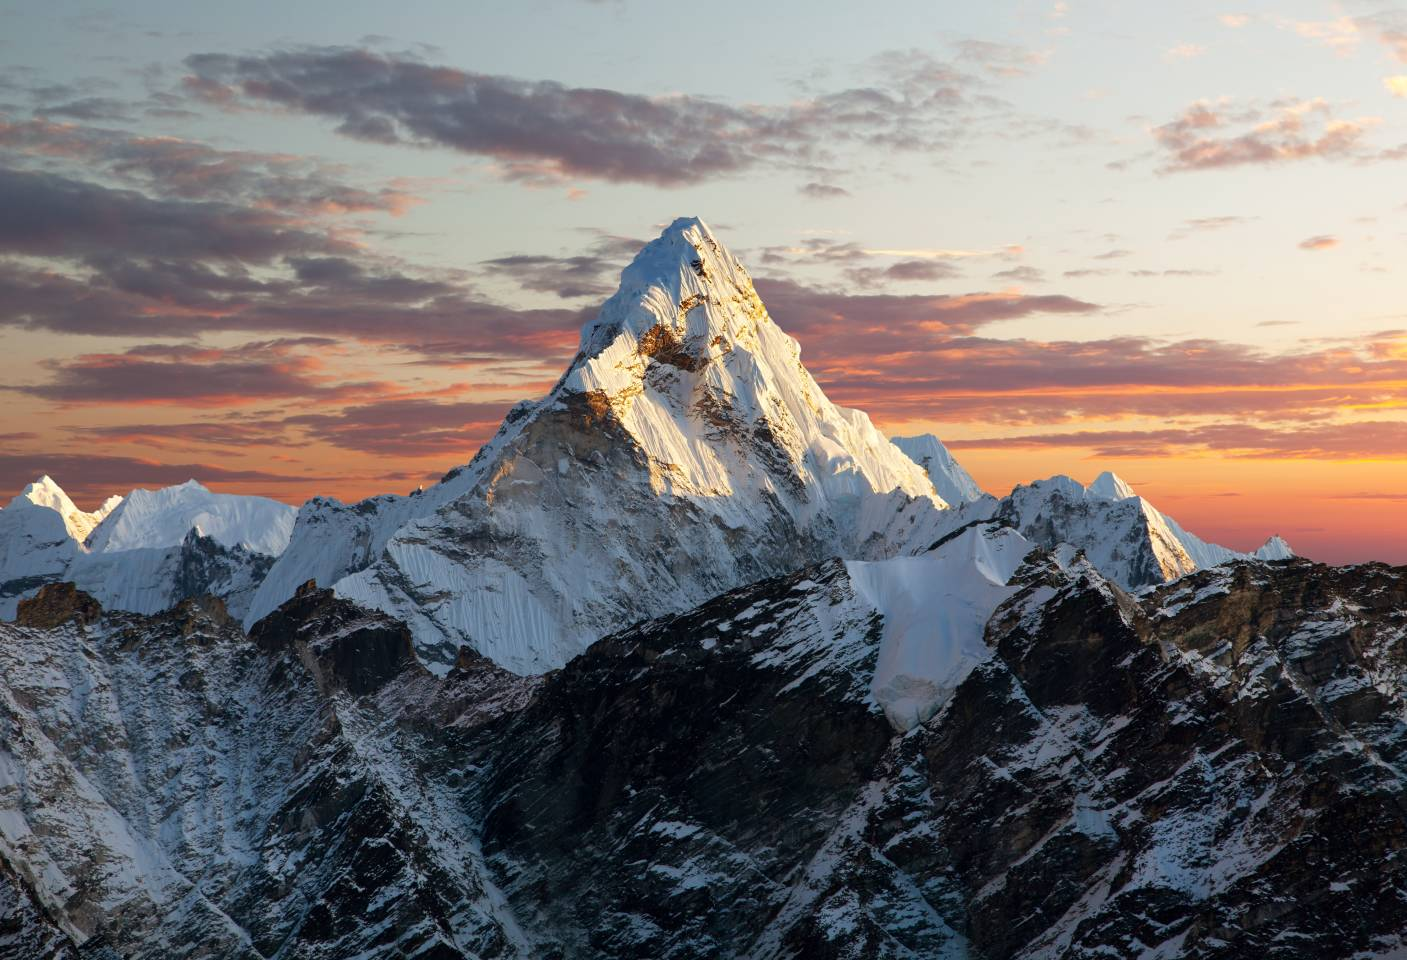 mountain peak at sunset